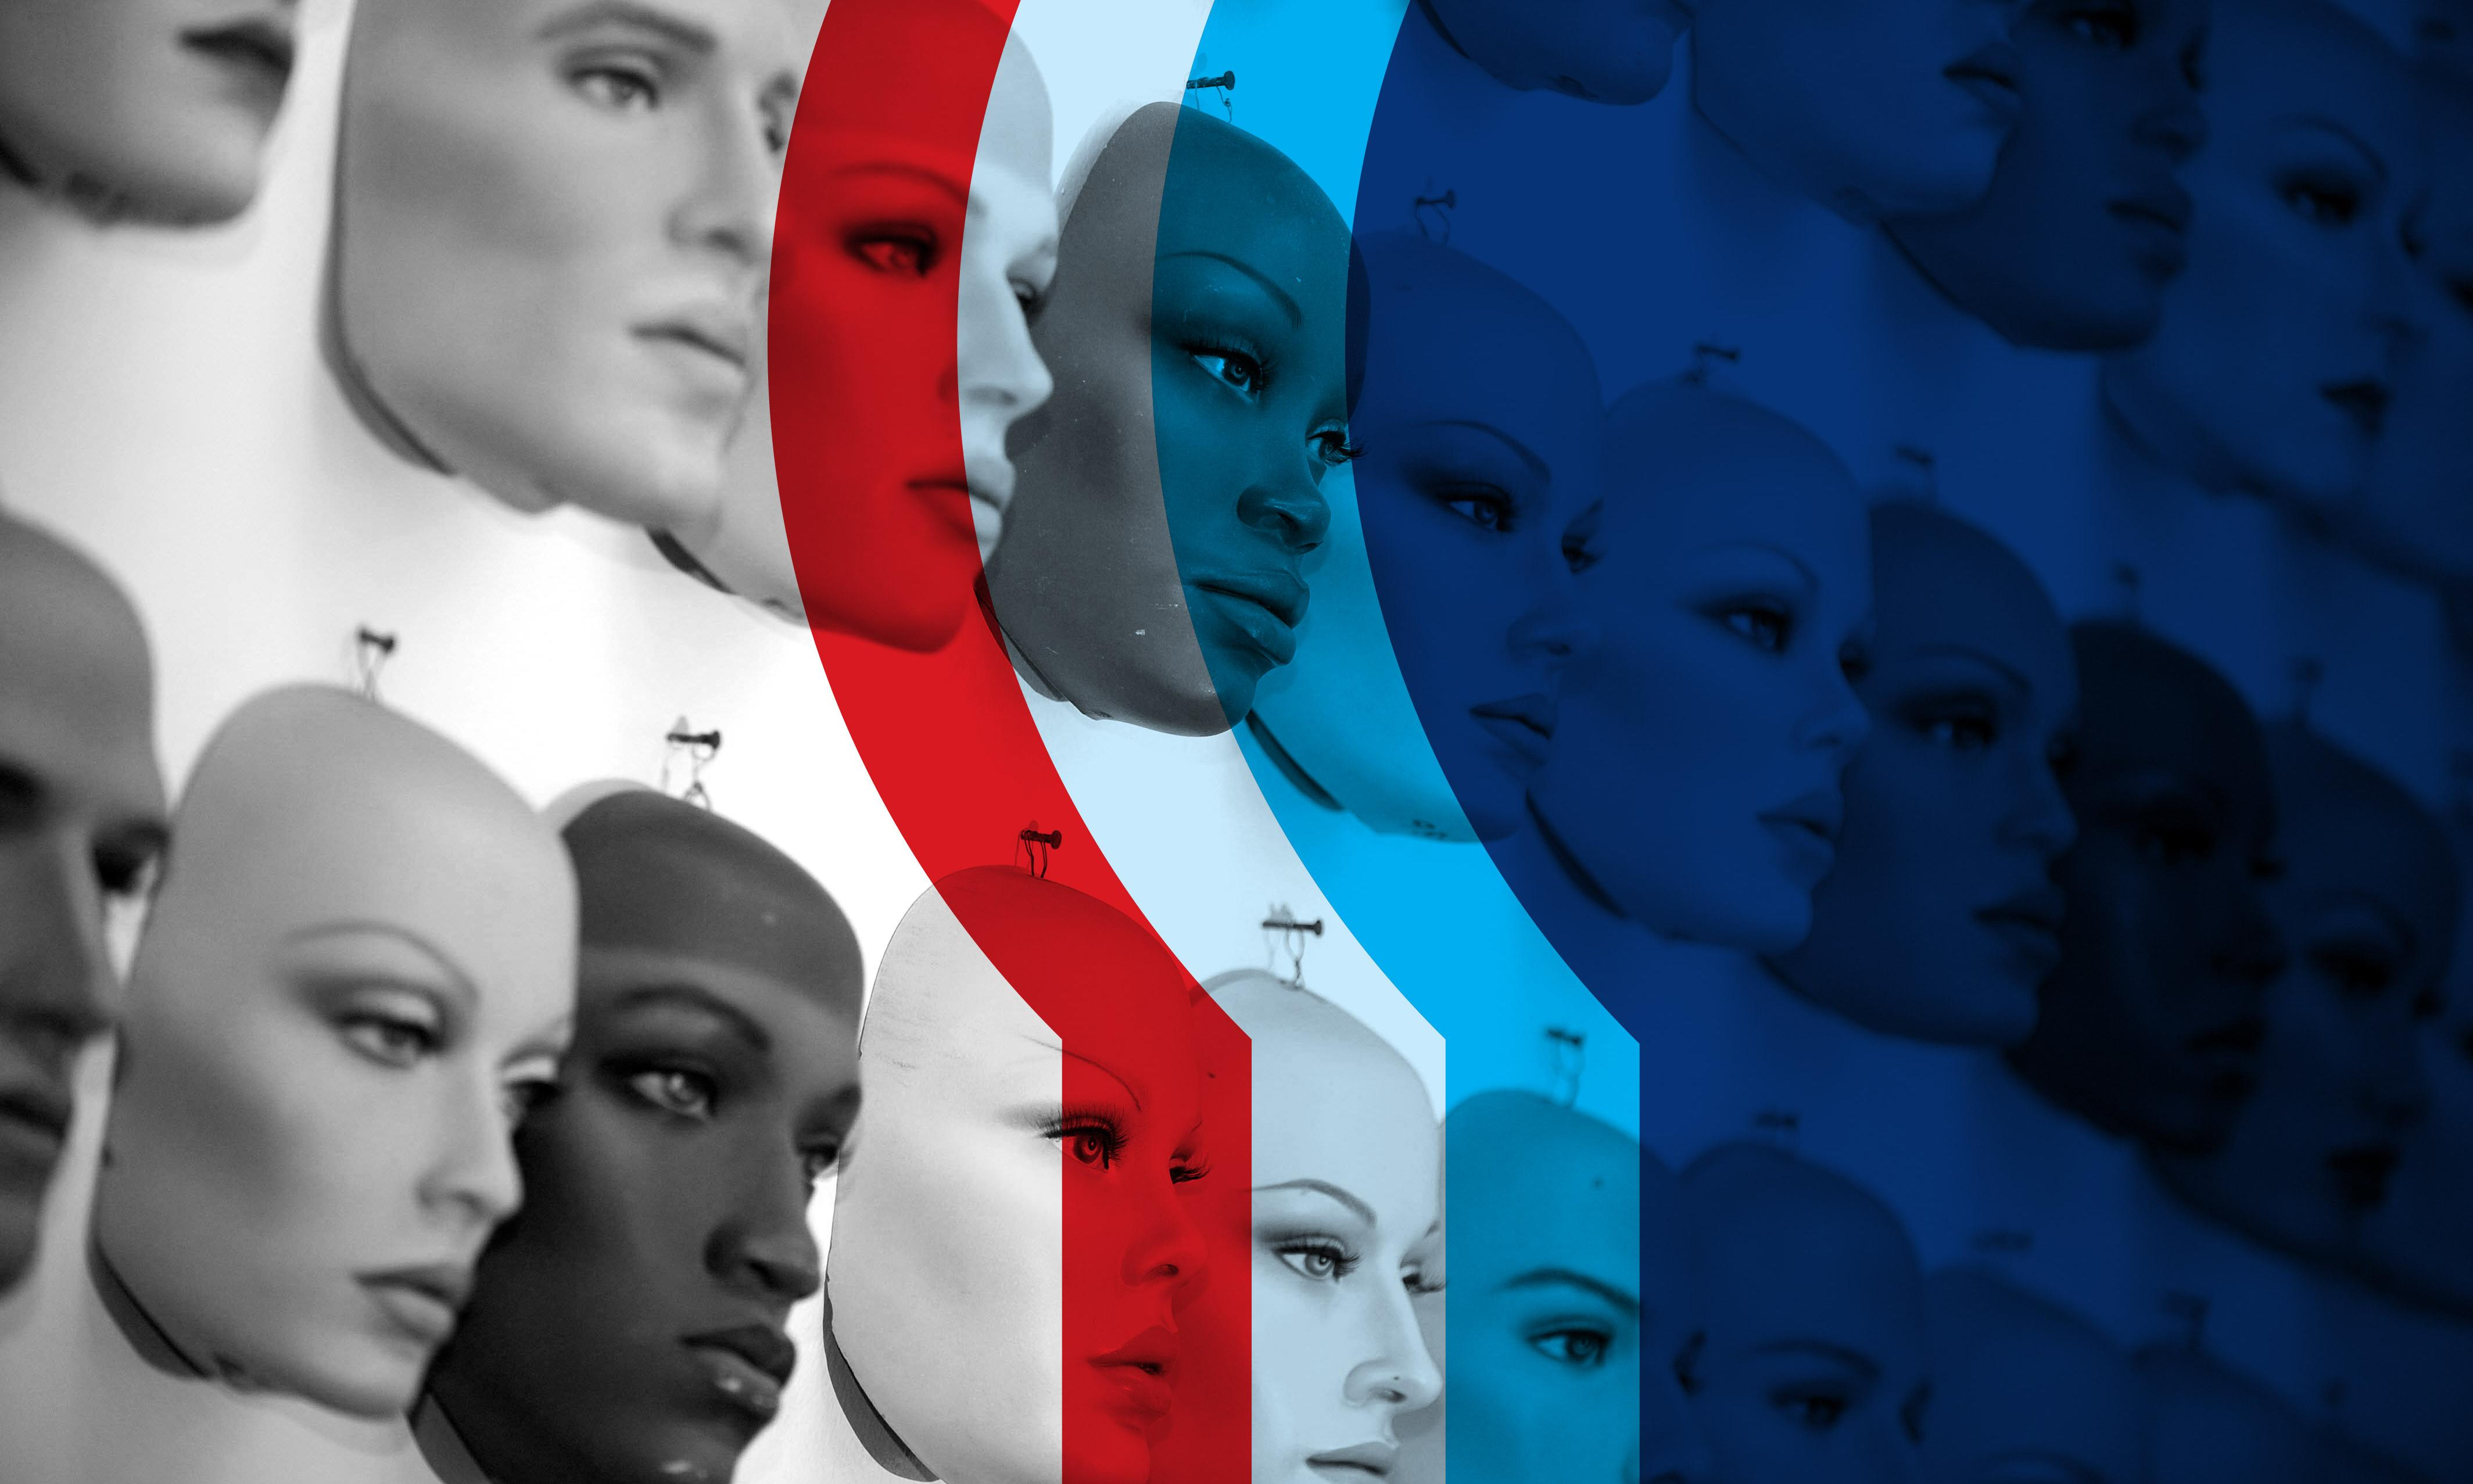 Unconscious bias: what is it and can it be eliminated?